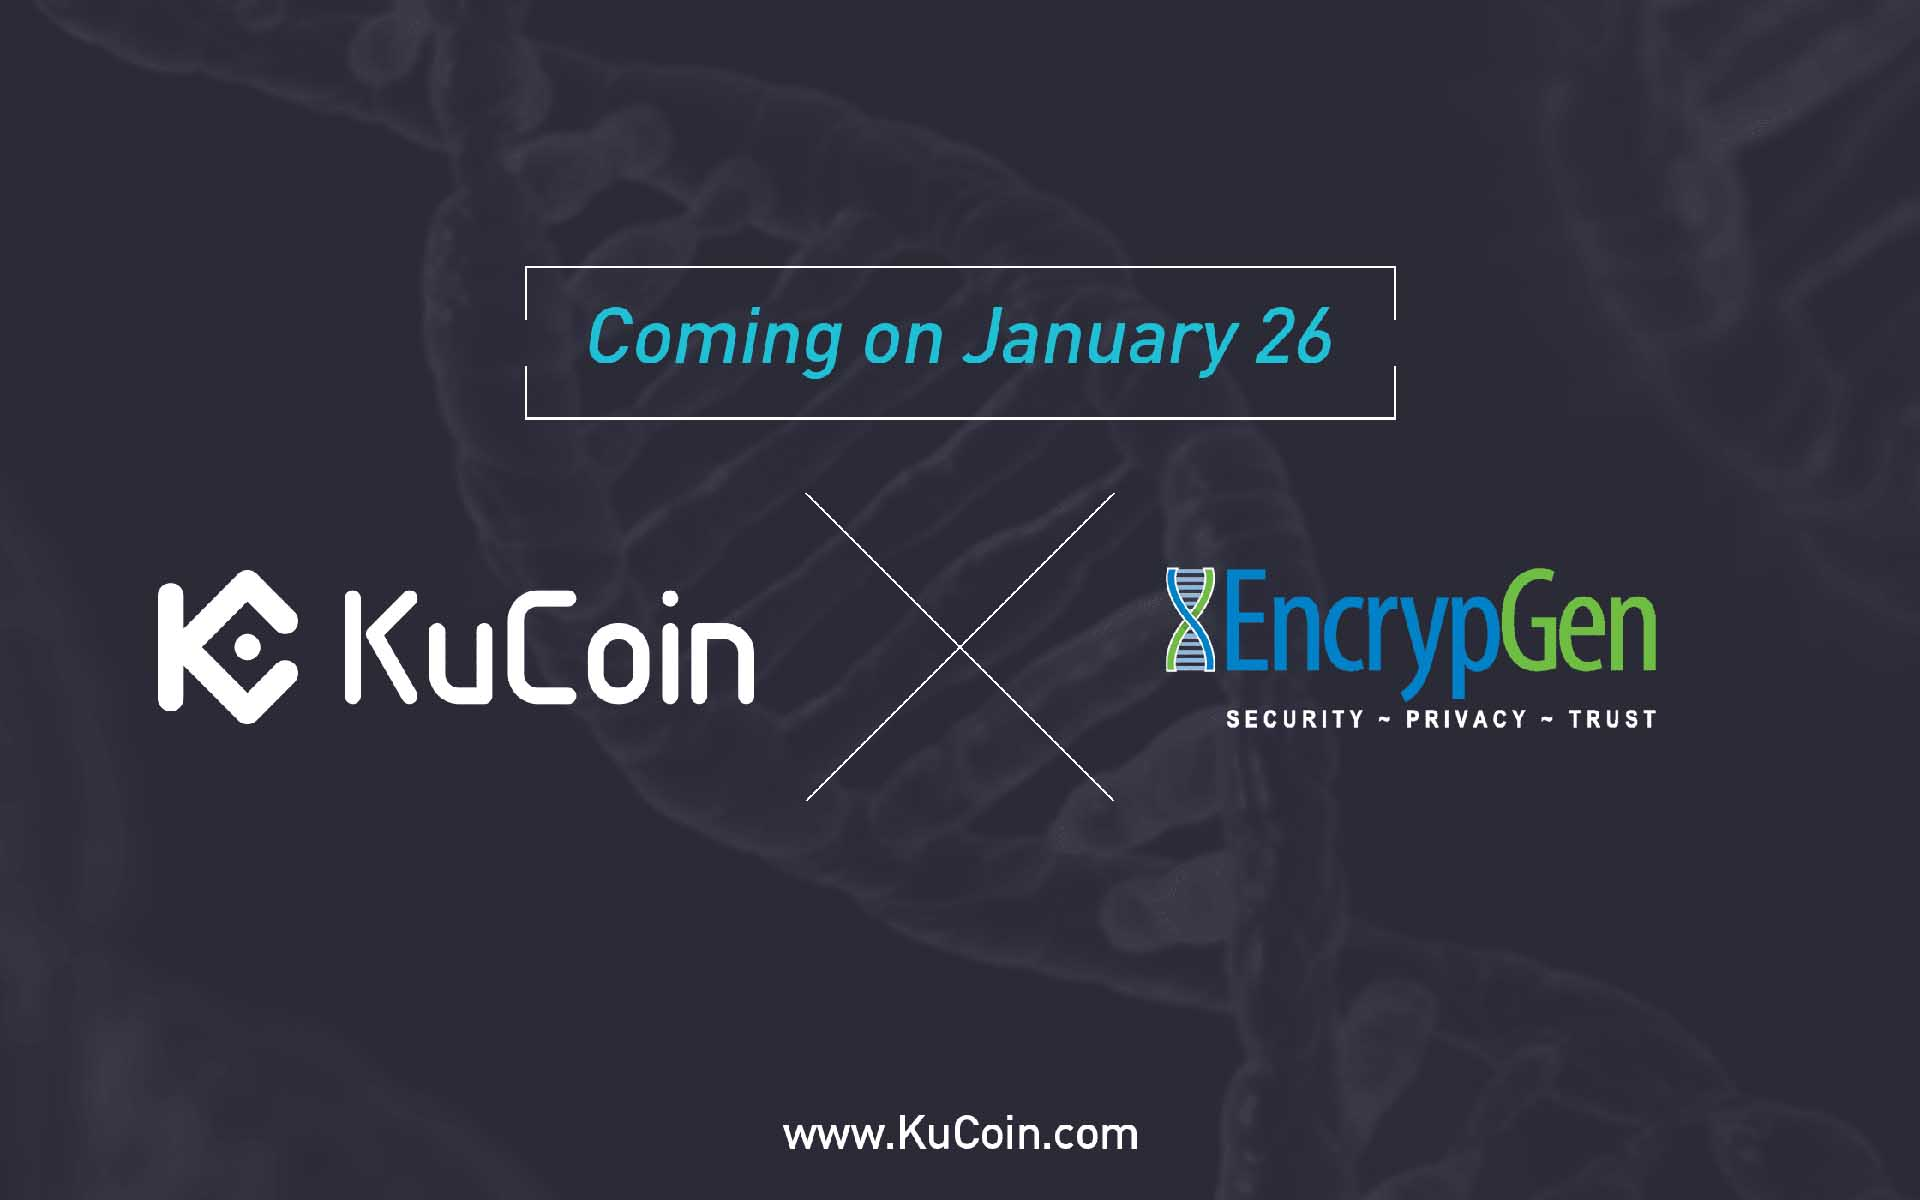 EncrypGen (DNA) Gets List on Kucoin!